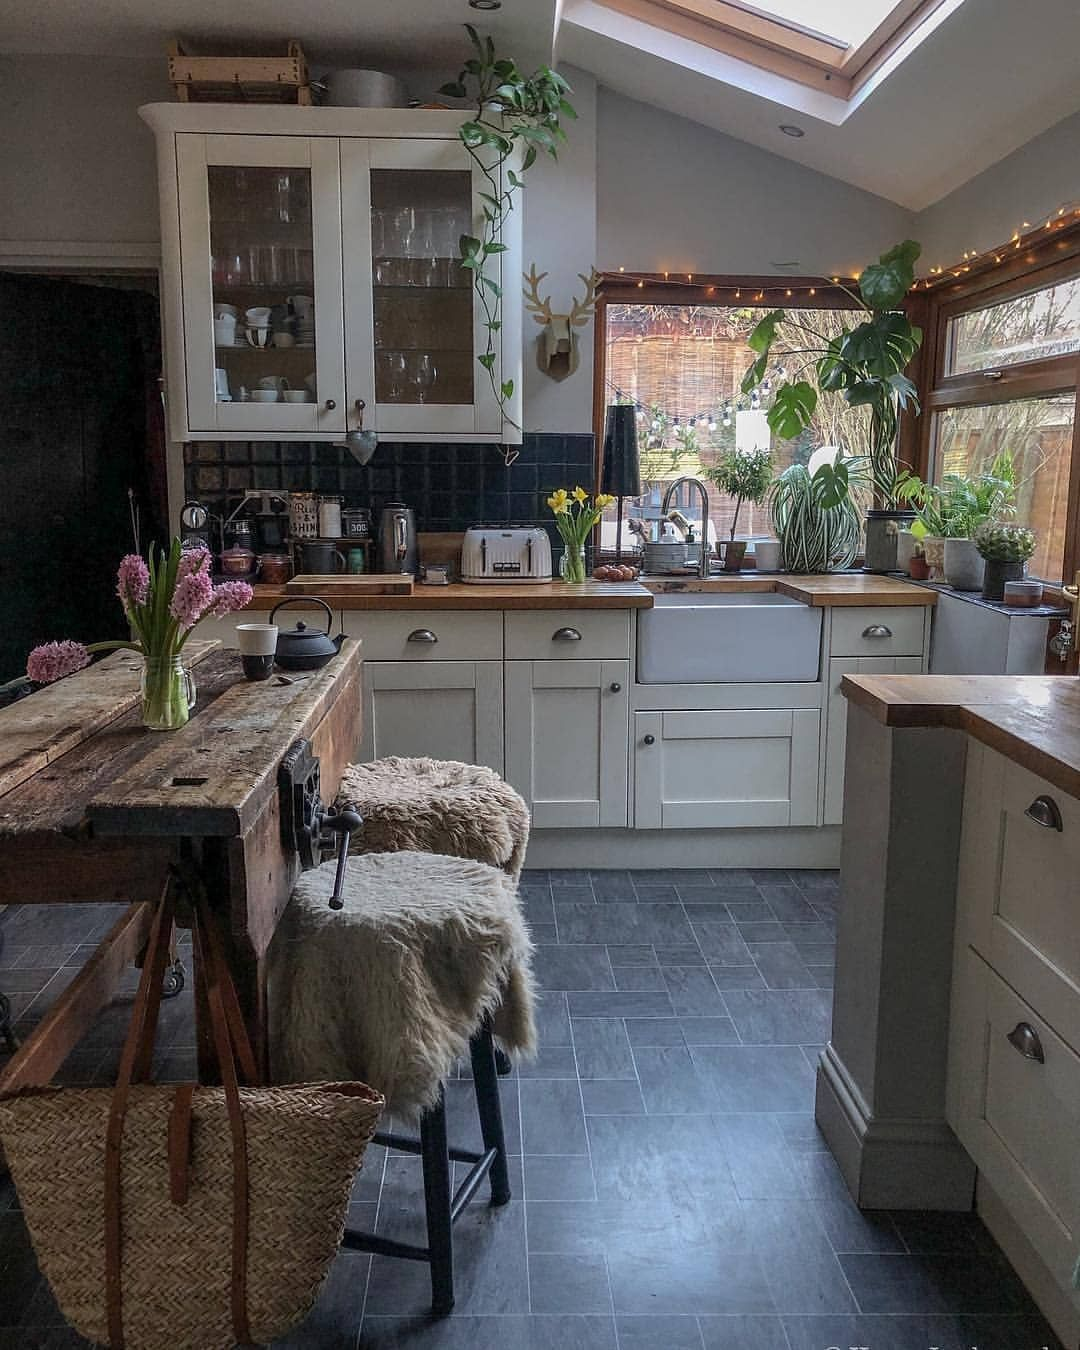 33 Modern Style Cozy Wooden Kitchen Design Ideas: This Kitchen Just Screams Cozy At Us 😊 We Love The Natural